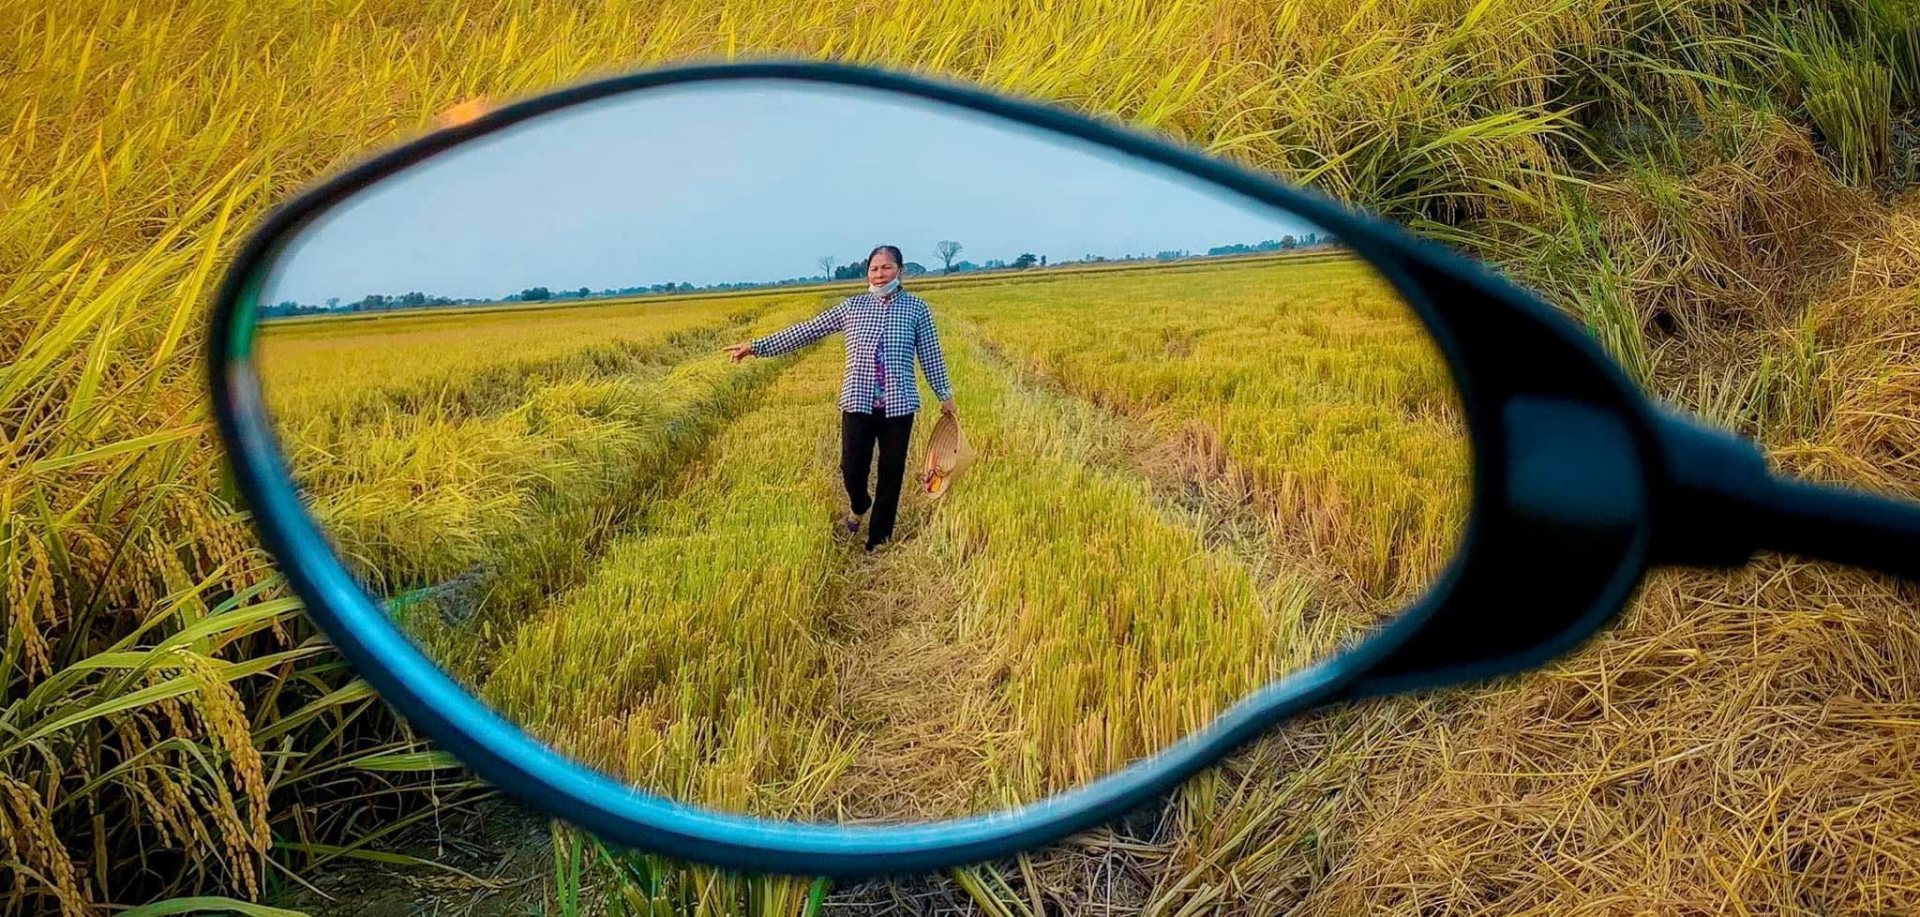 Young man captures his hometown through rear-view mirror